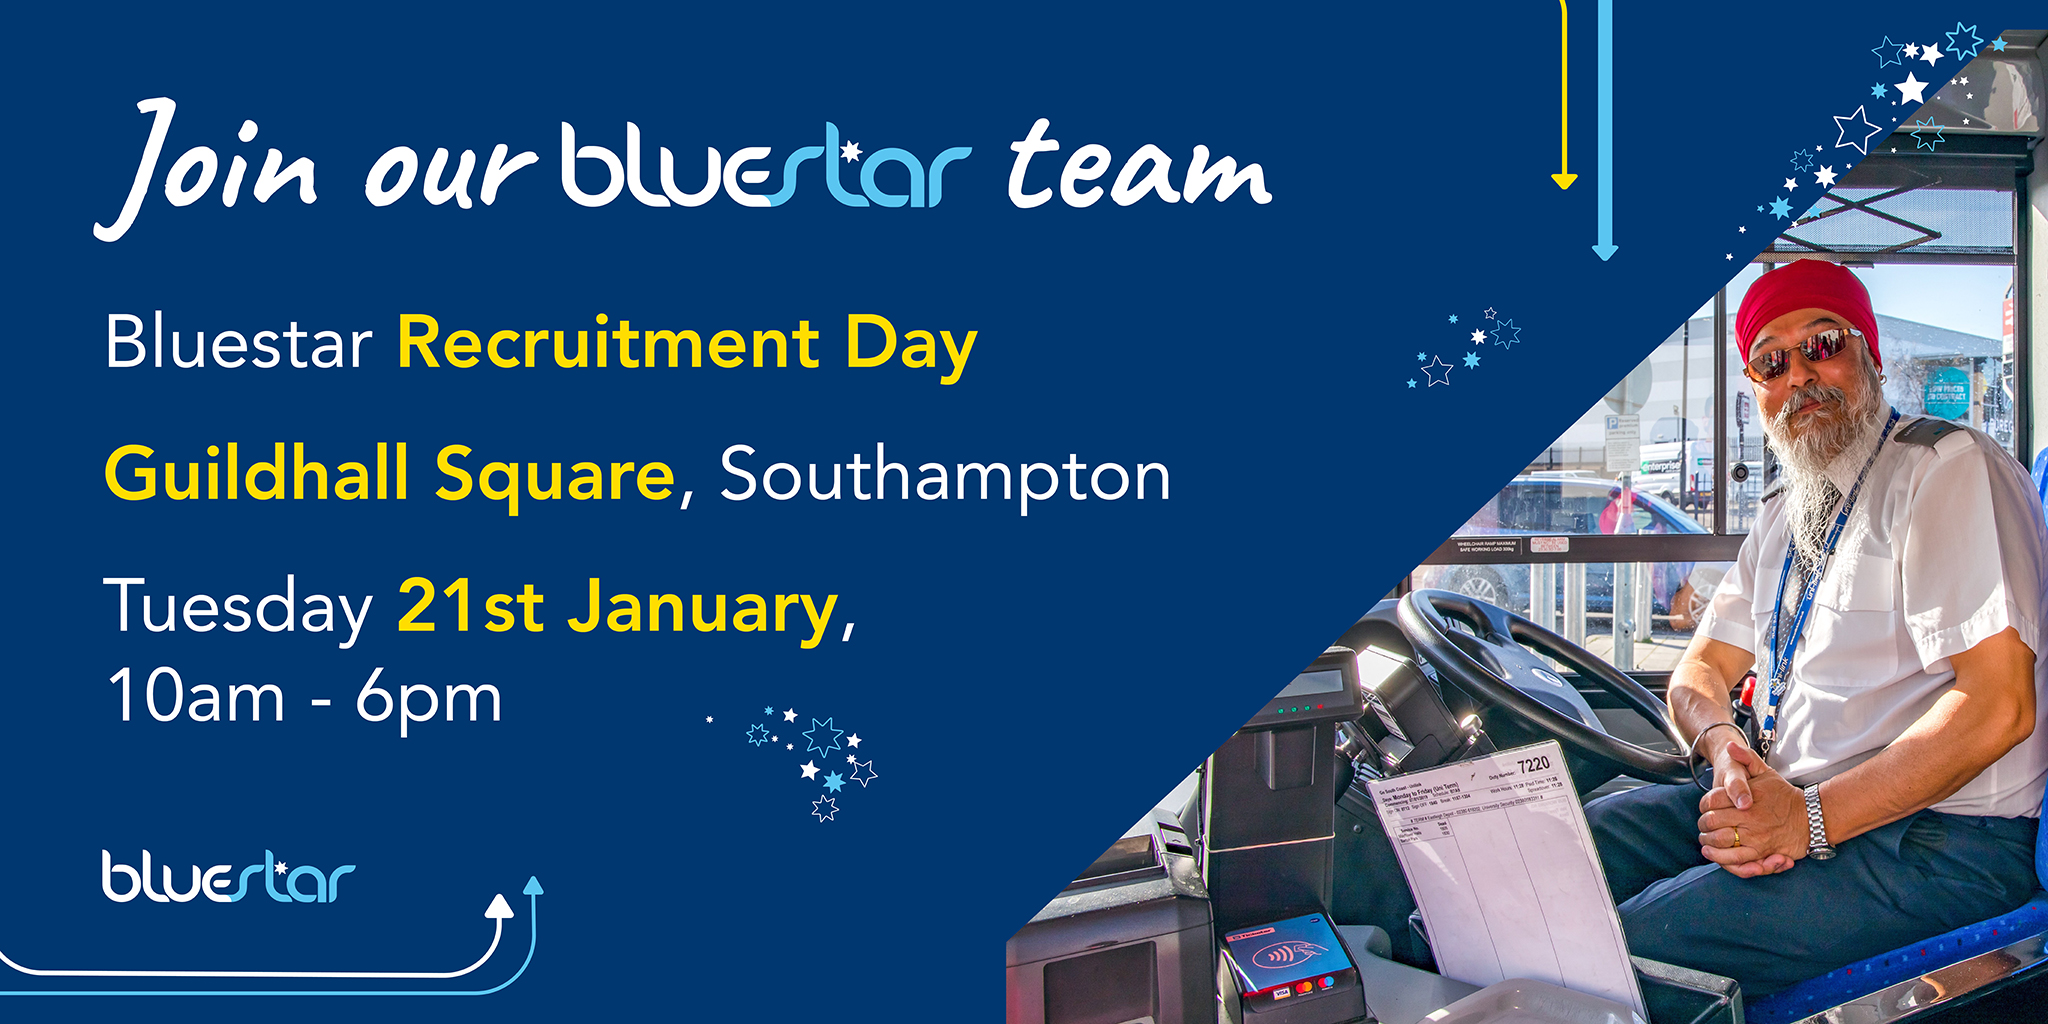 Recruitment Day - 21st January 2020 - Guildhall Square, Southampton